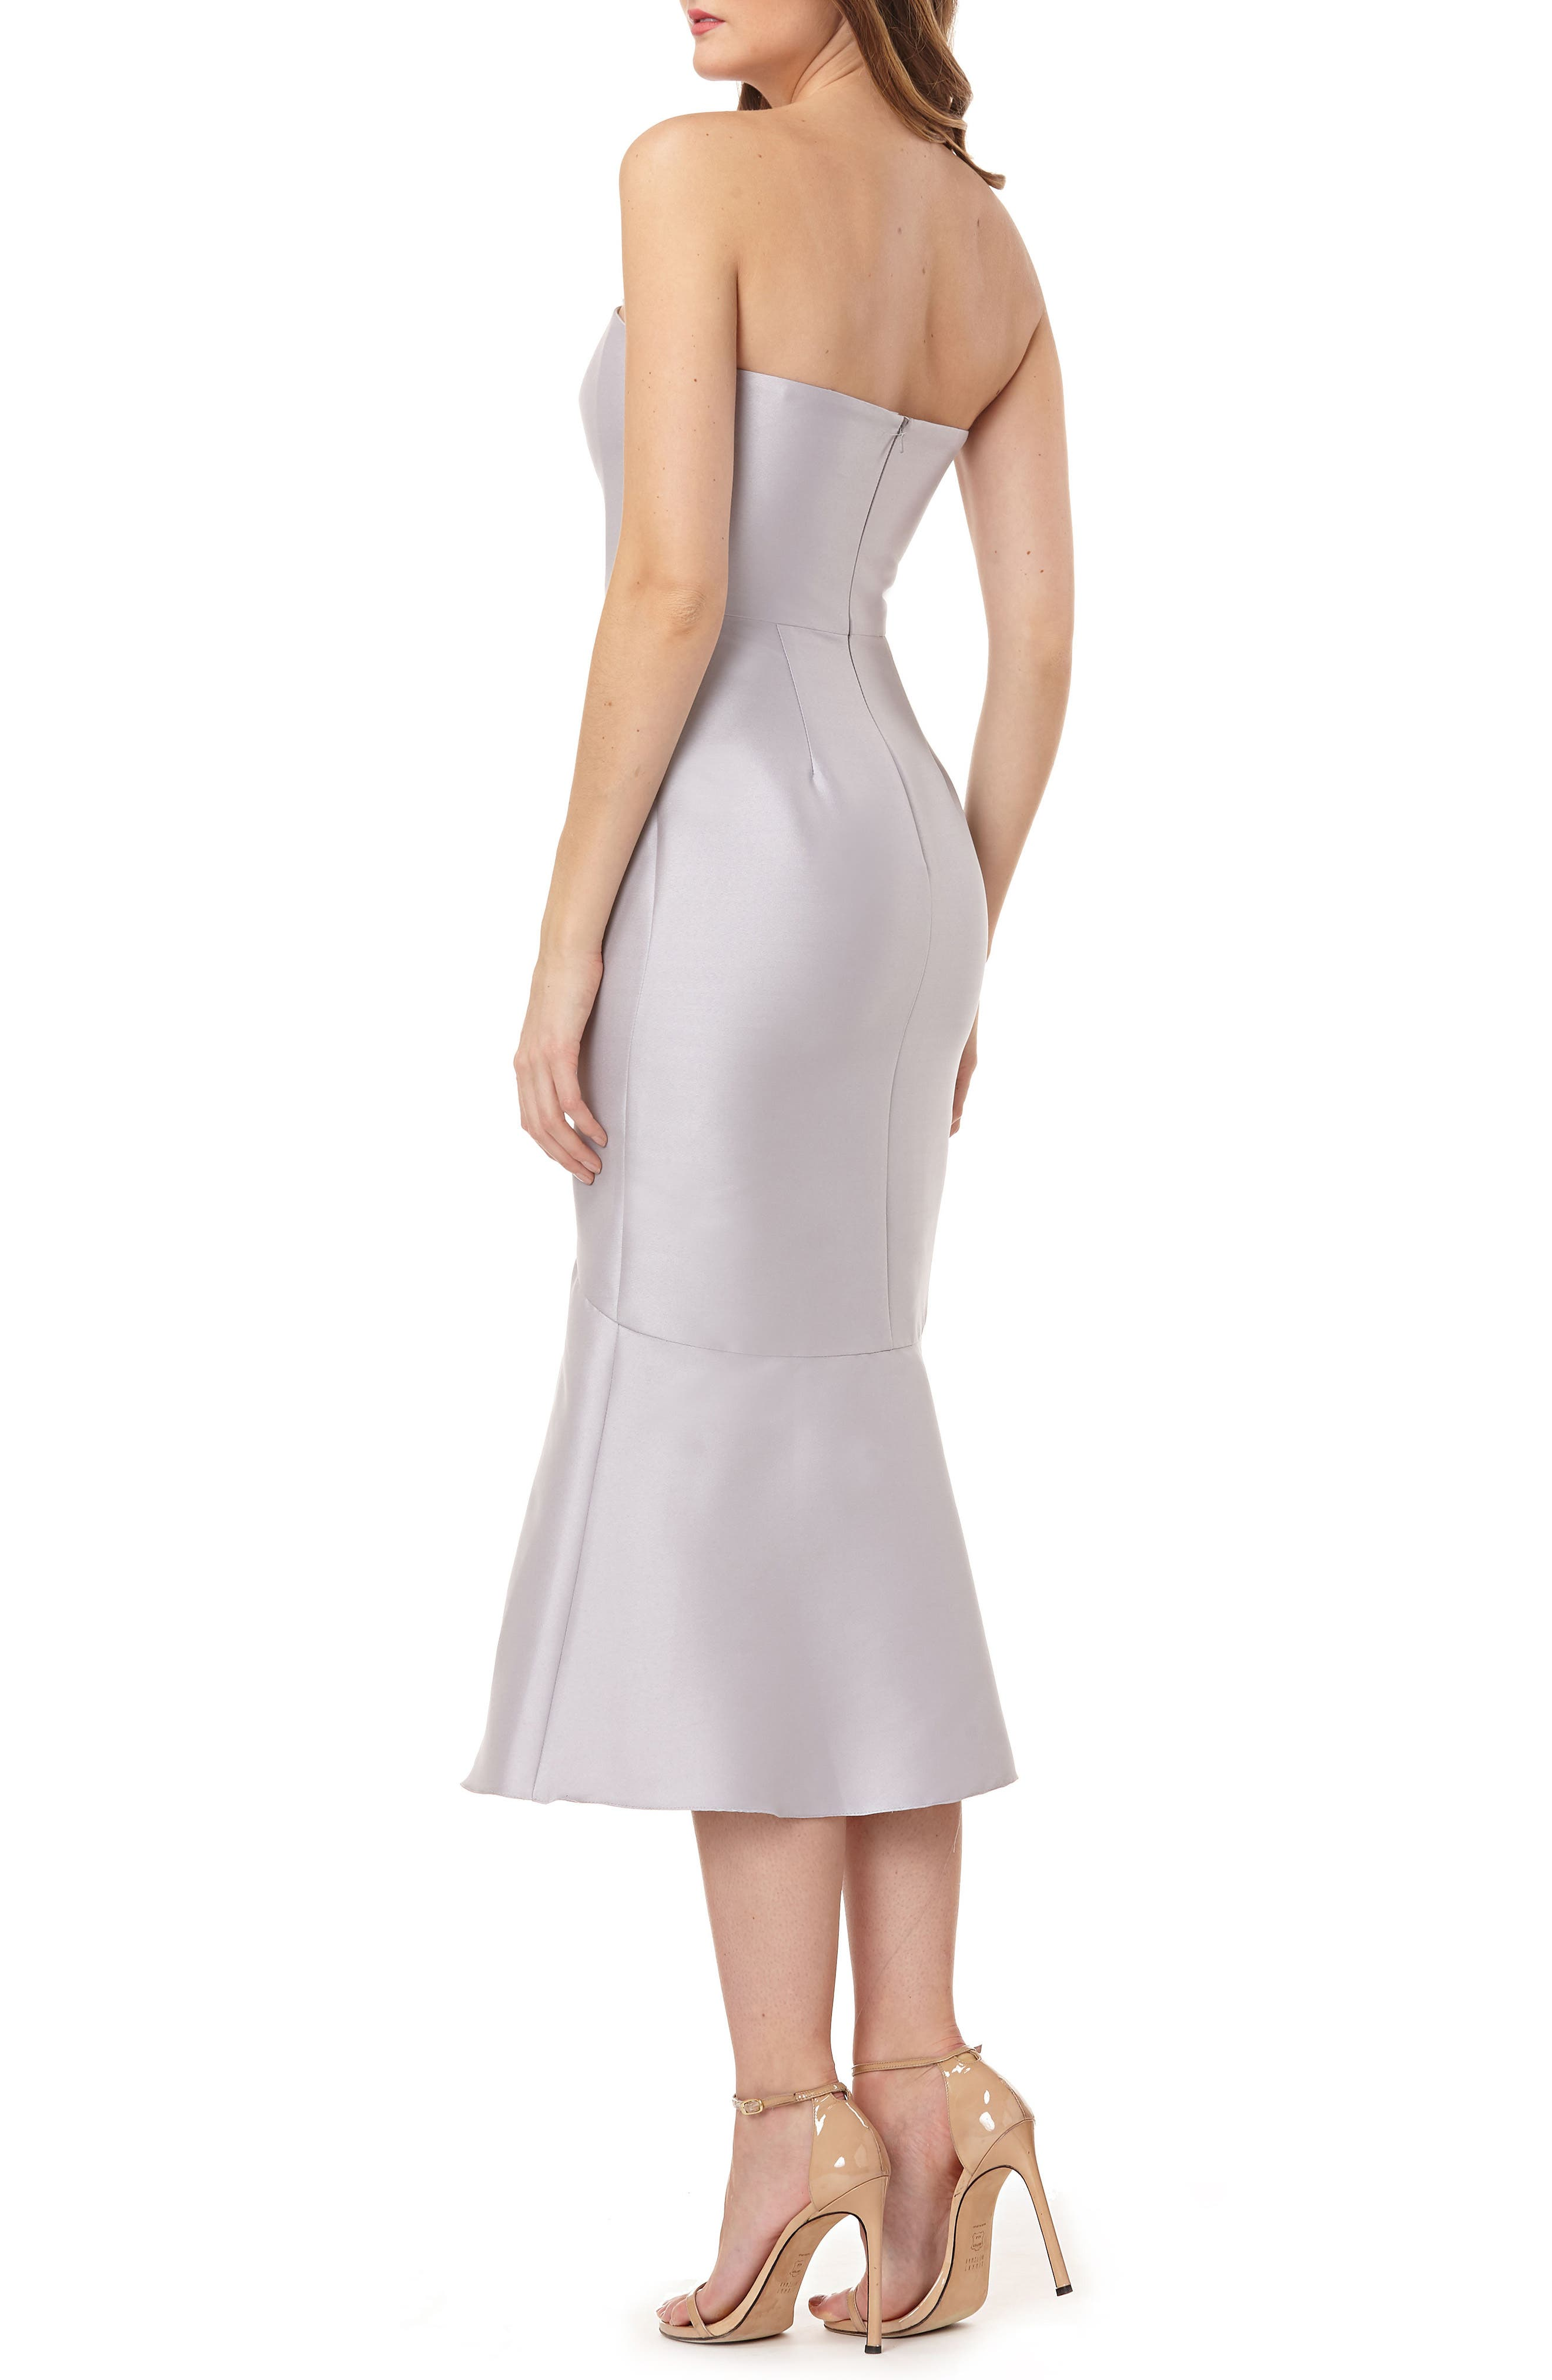 Strapless Satin Tea Length Dress,                             Alternate thumbnail 2, color,                             DOVE GREY